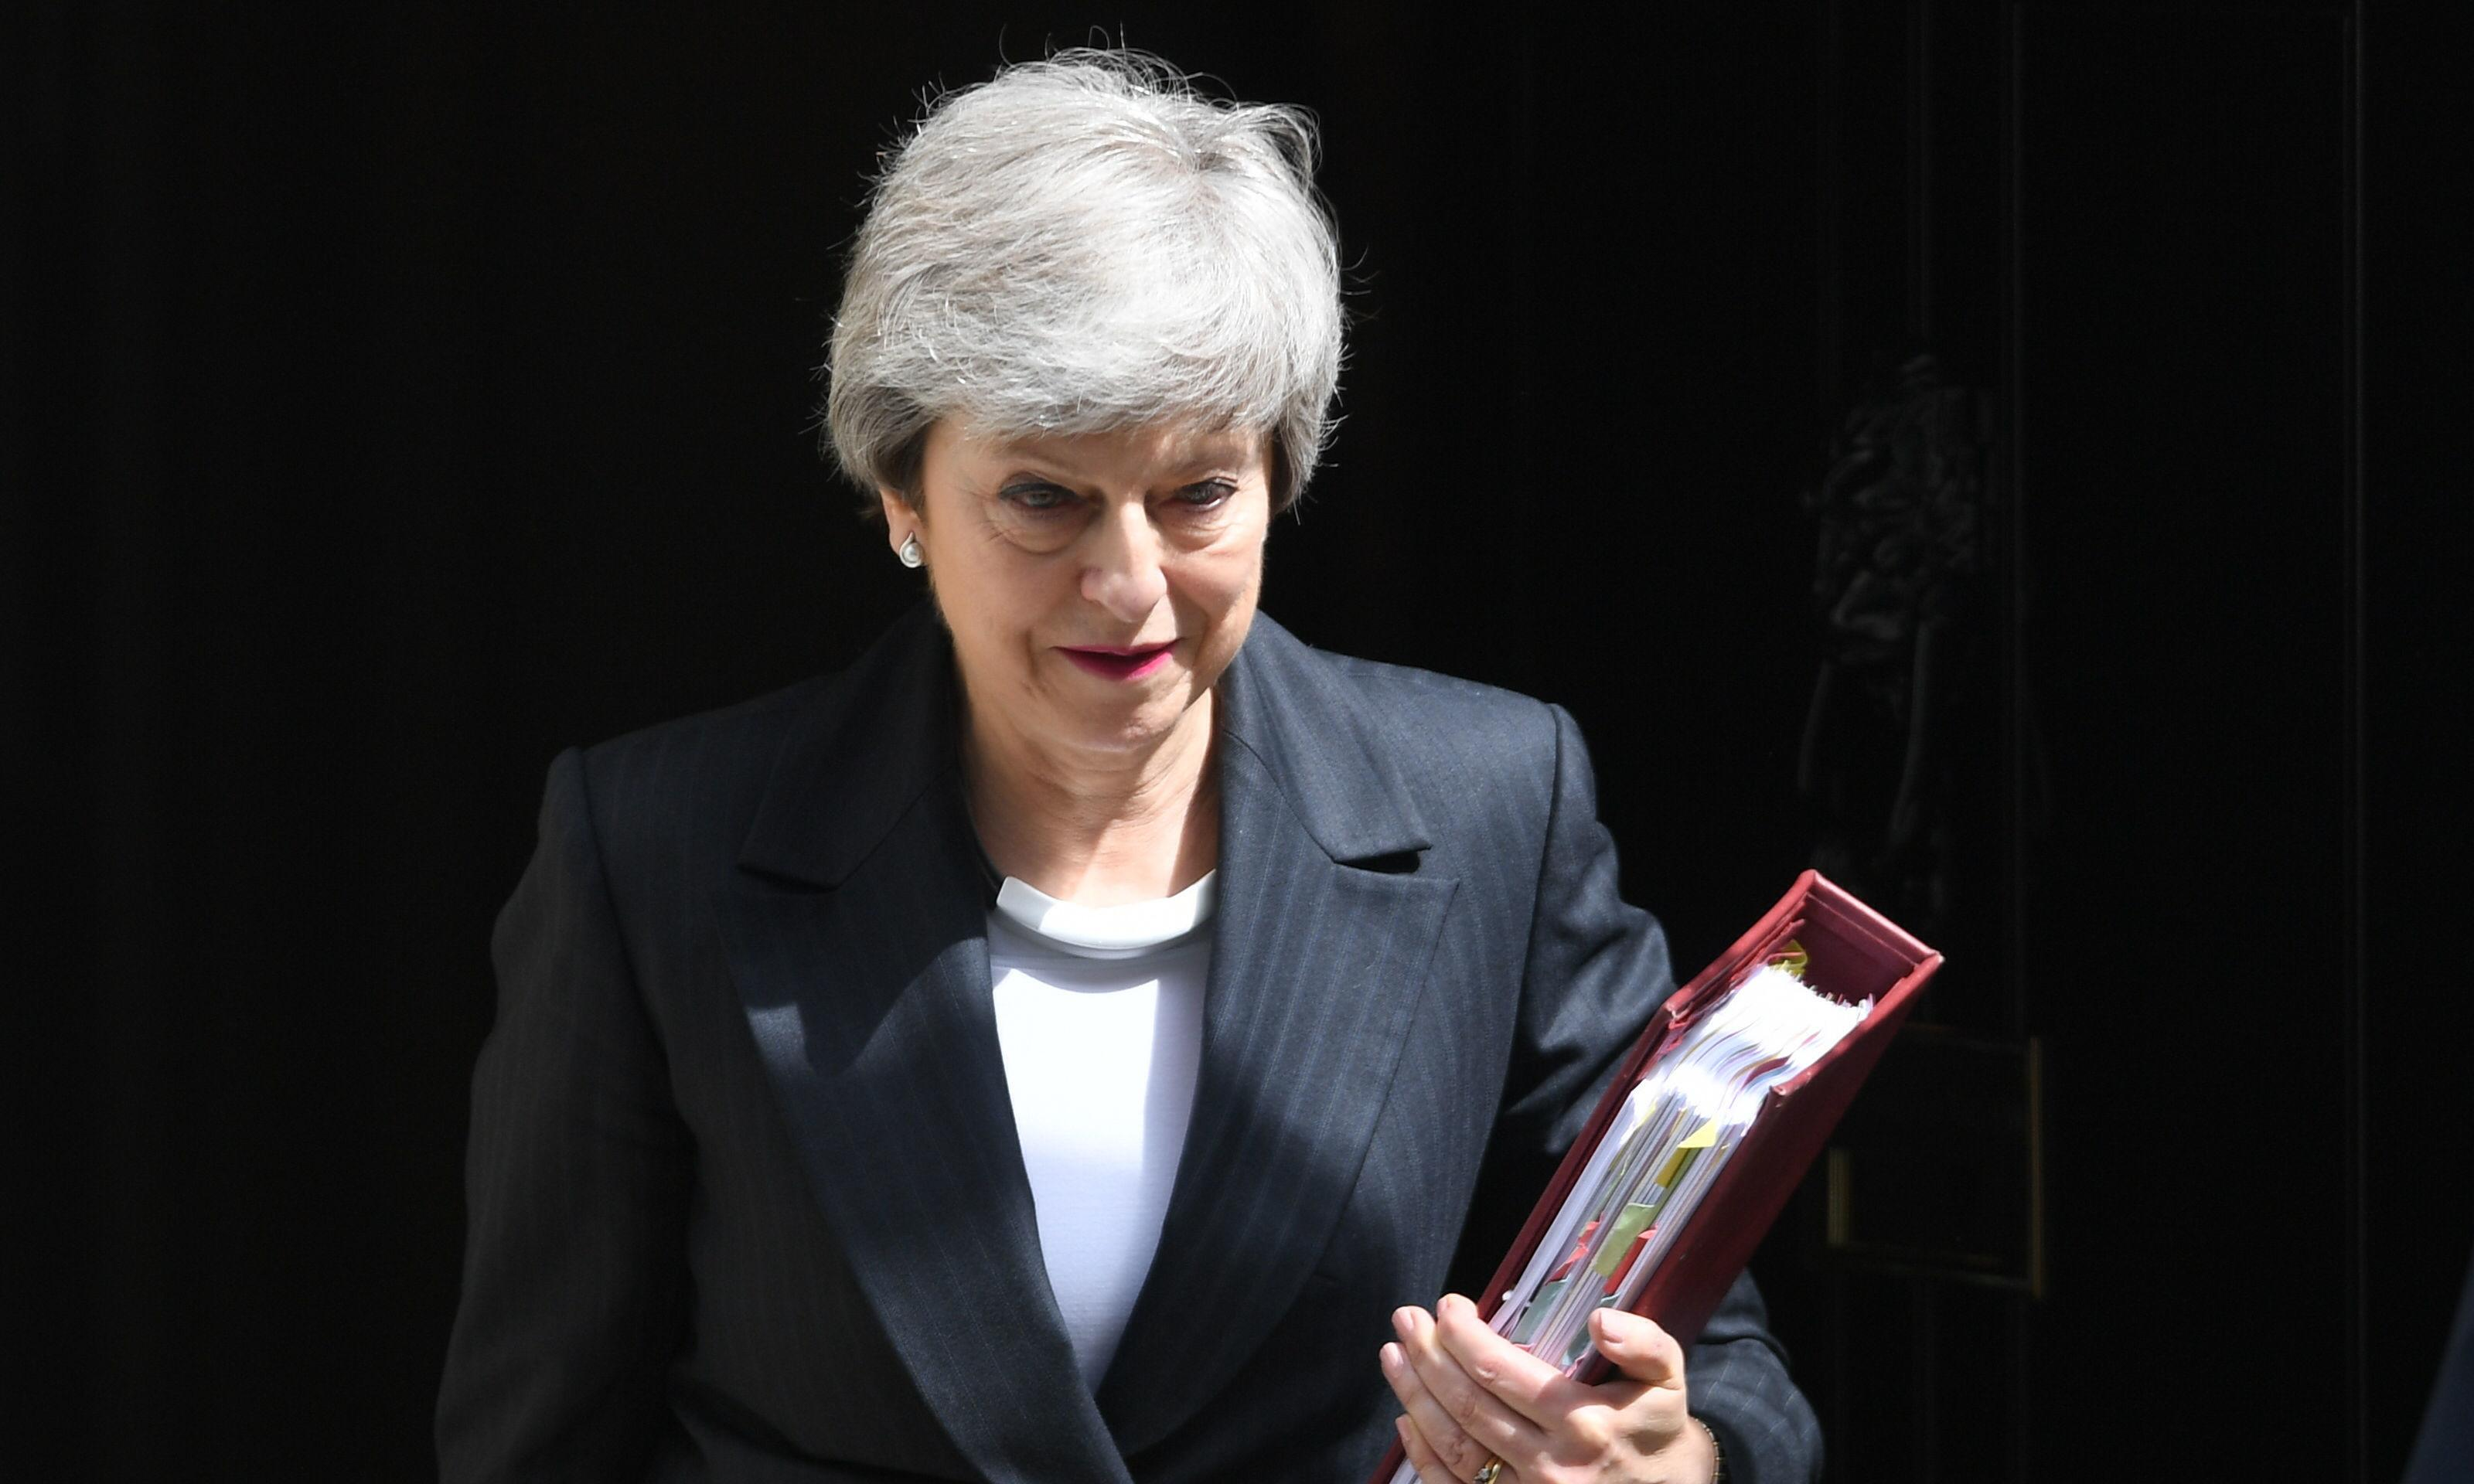 Without true friends or allies, Theresa May's downfall was inevitable